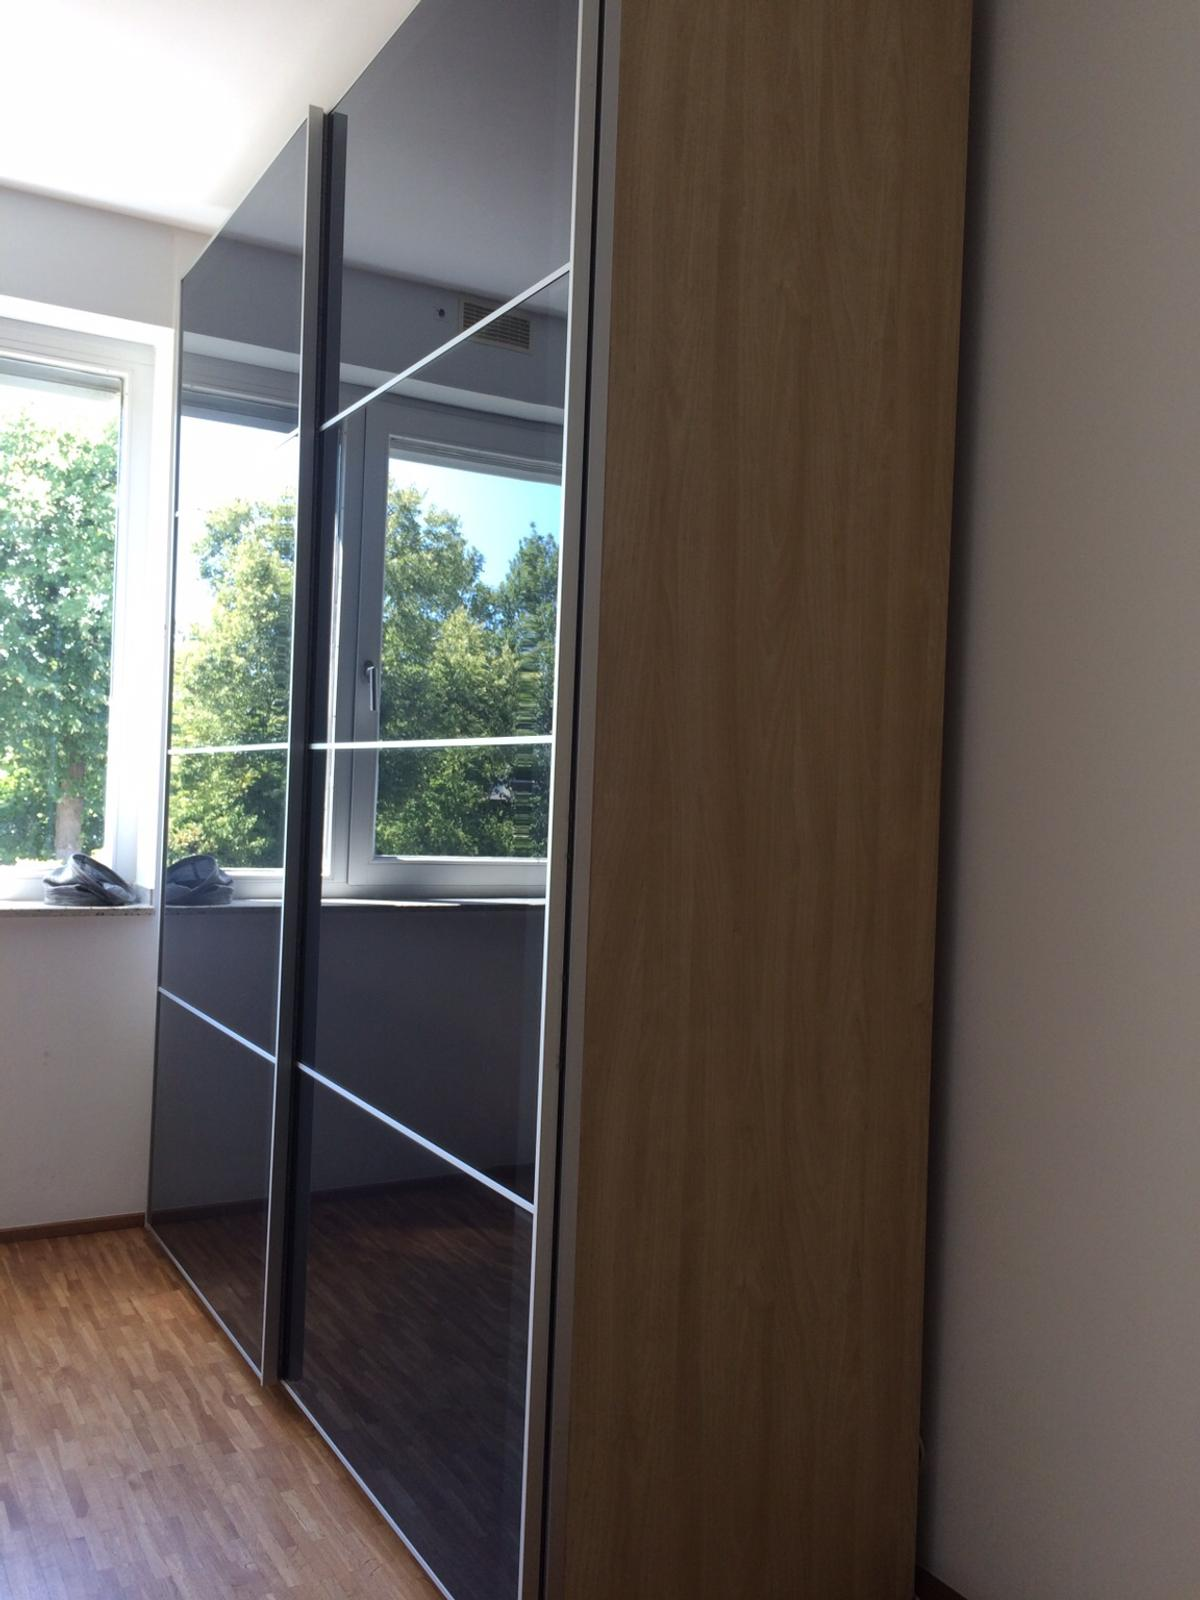 Pax Kleiderschrank In 40489 Dusseldorf For 65 00 For Sale Shpock